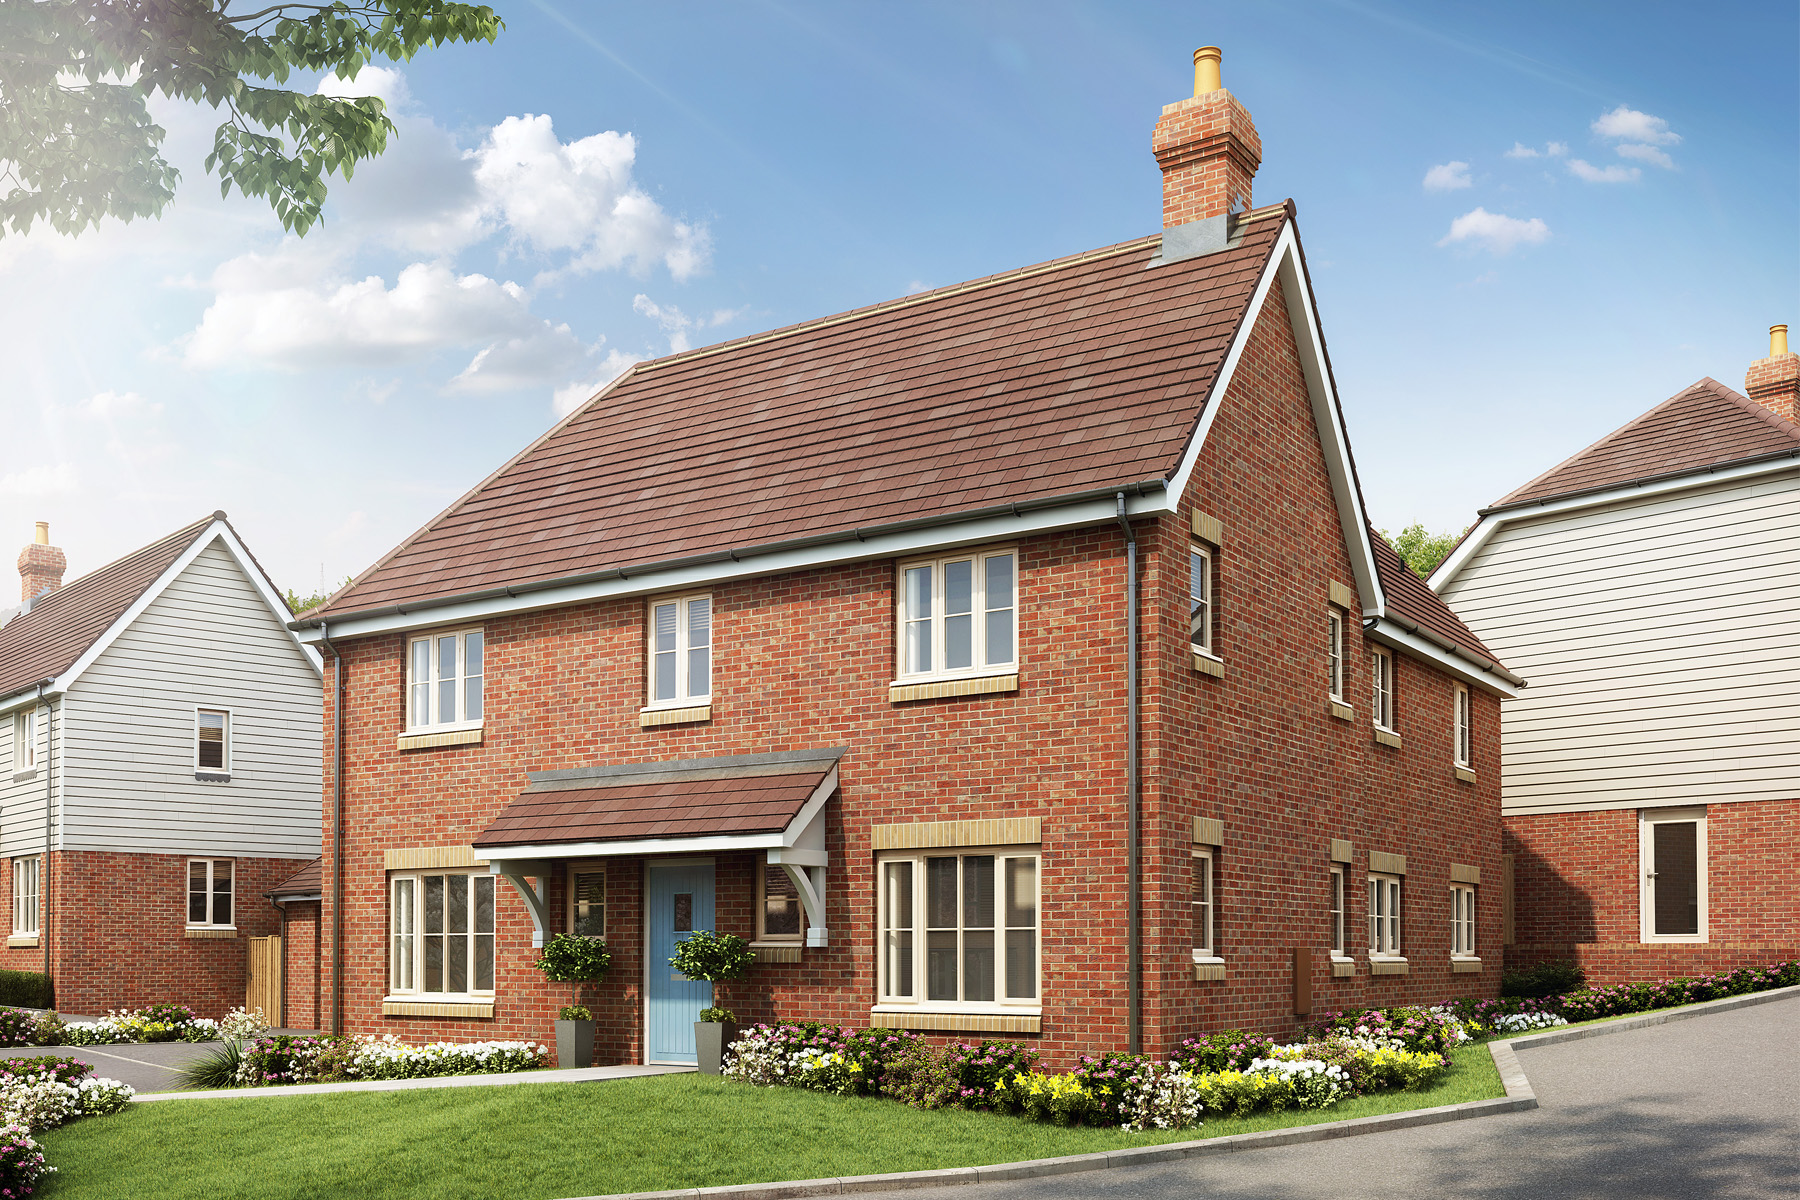 Aldington D - Plot 25